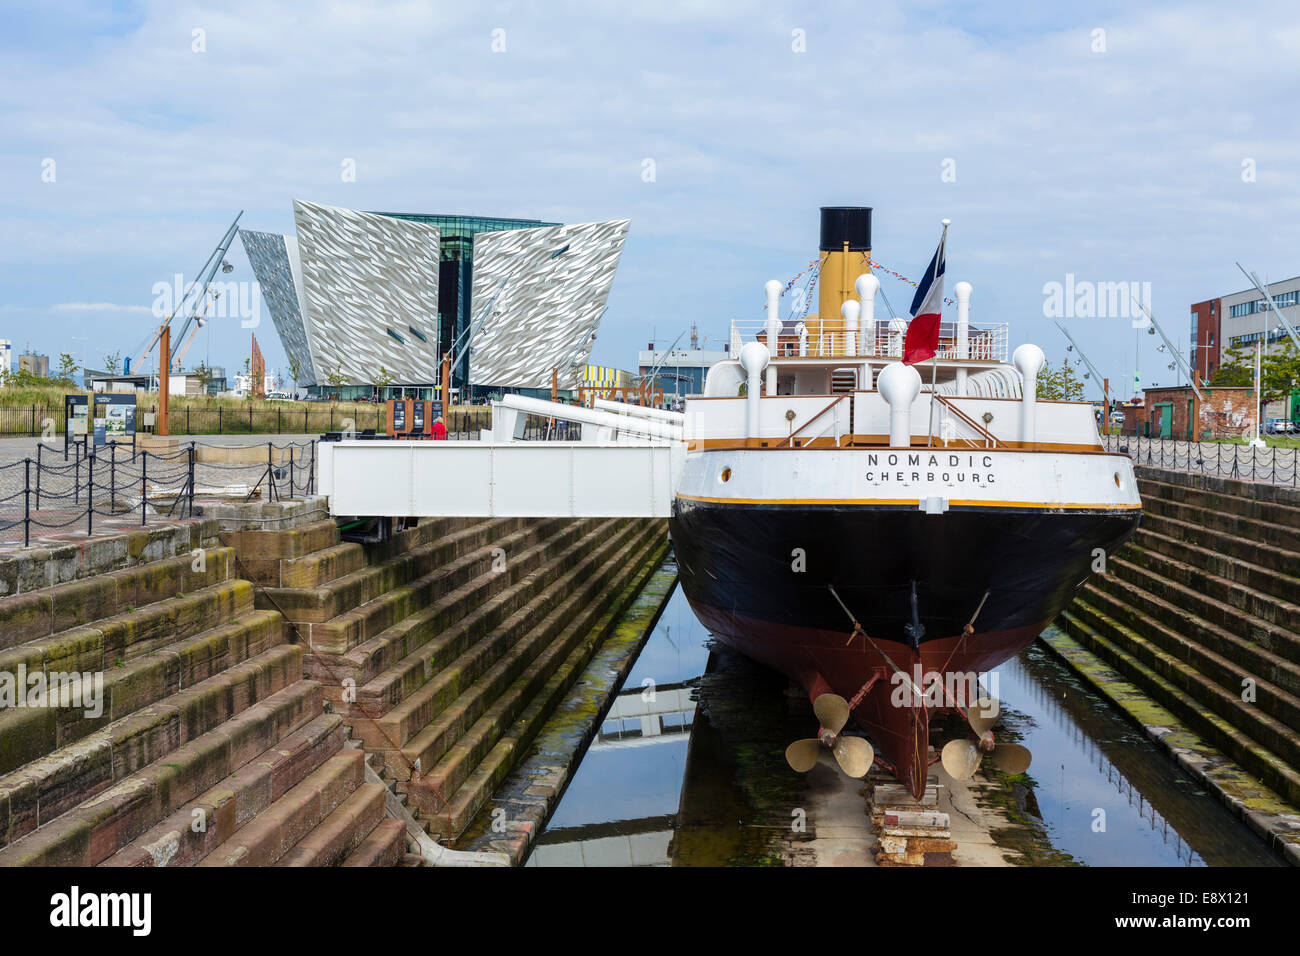 The steamship tender SS Nomadic with Titanic Belfast museum behind, Titanic Quarter, Belfast, Northern Ireland, - Stock Image